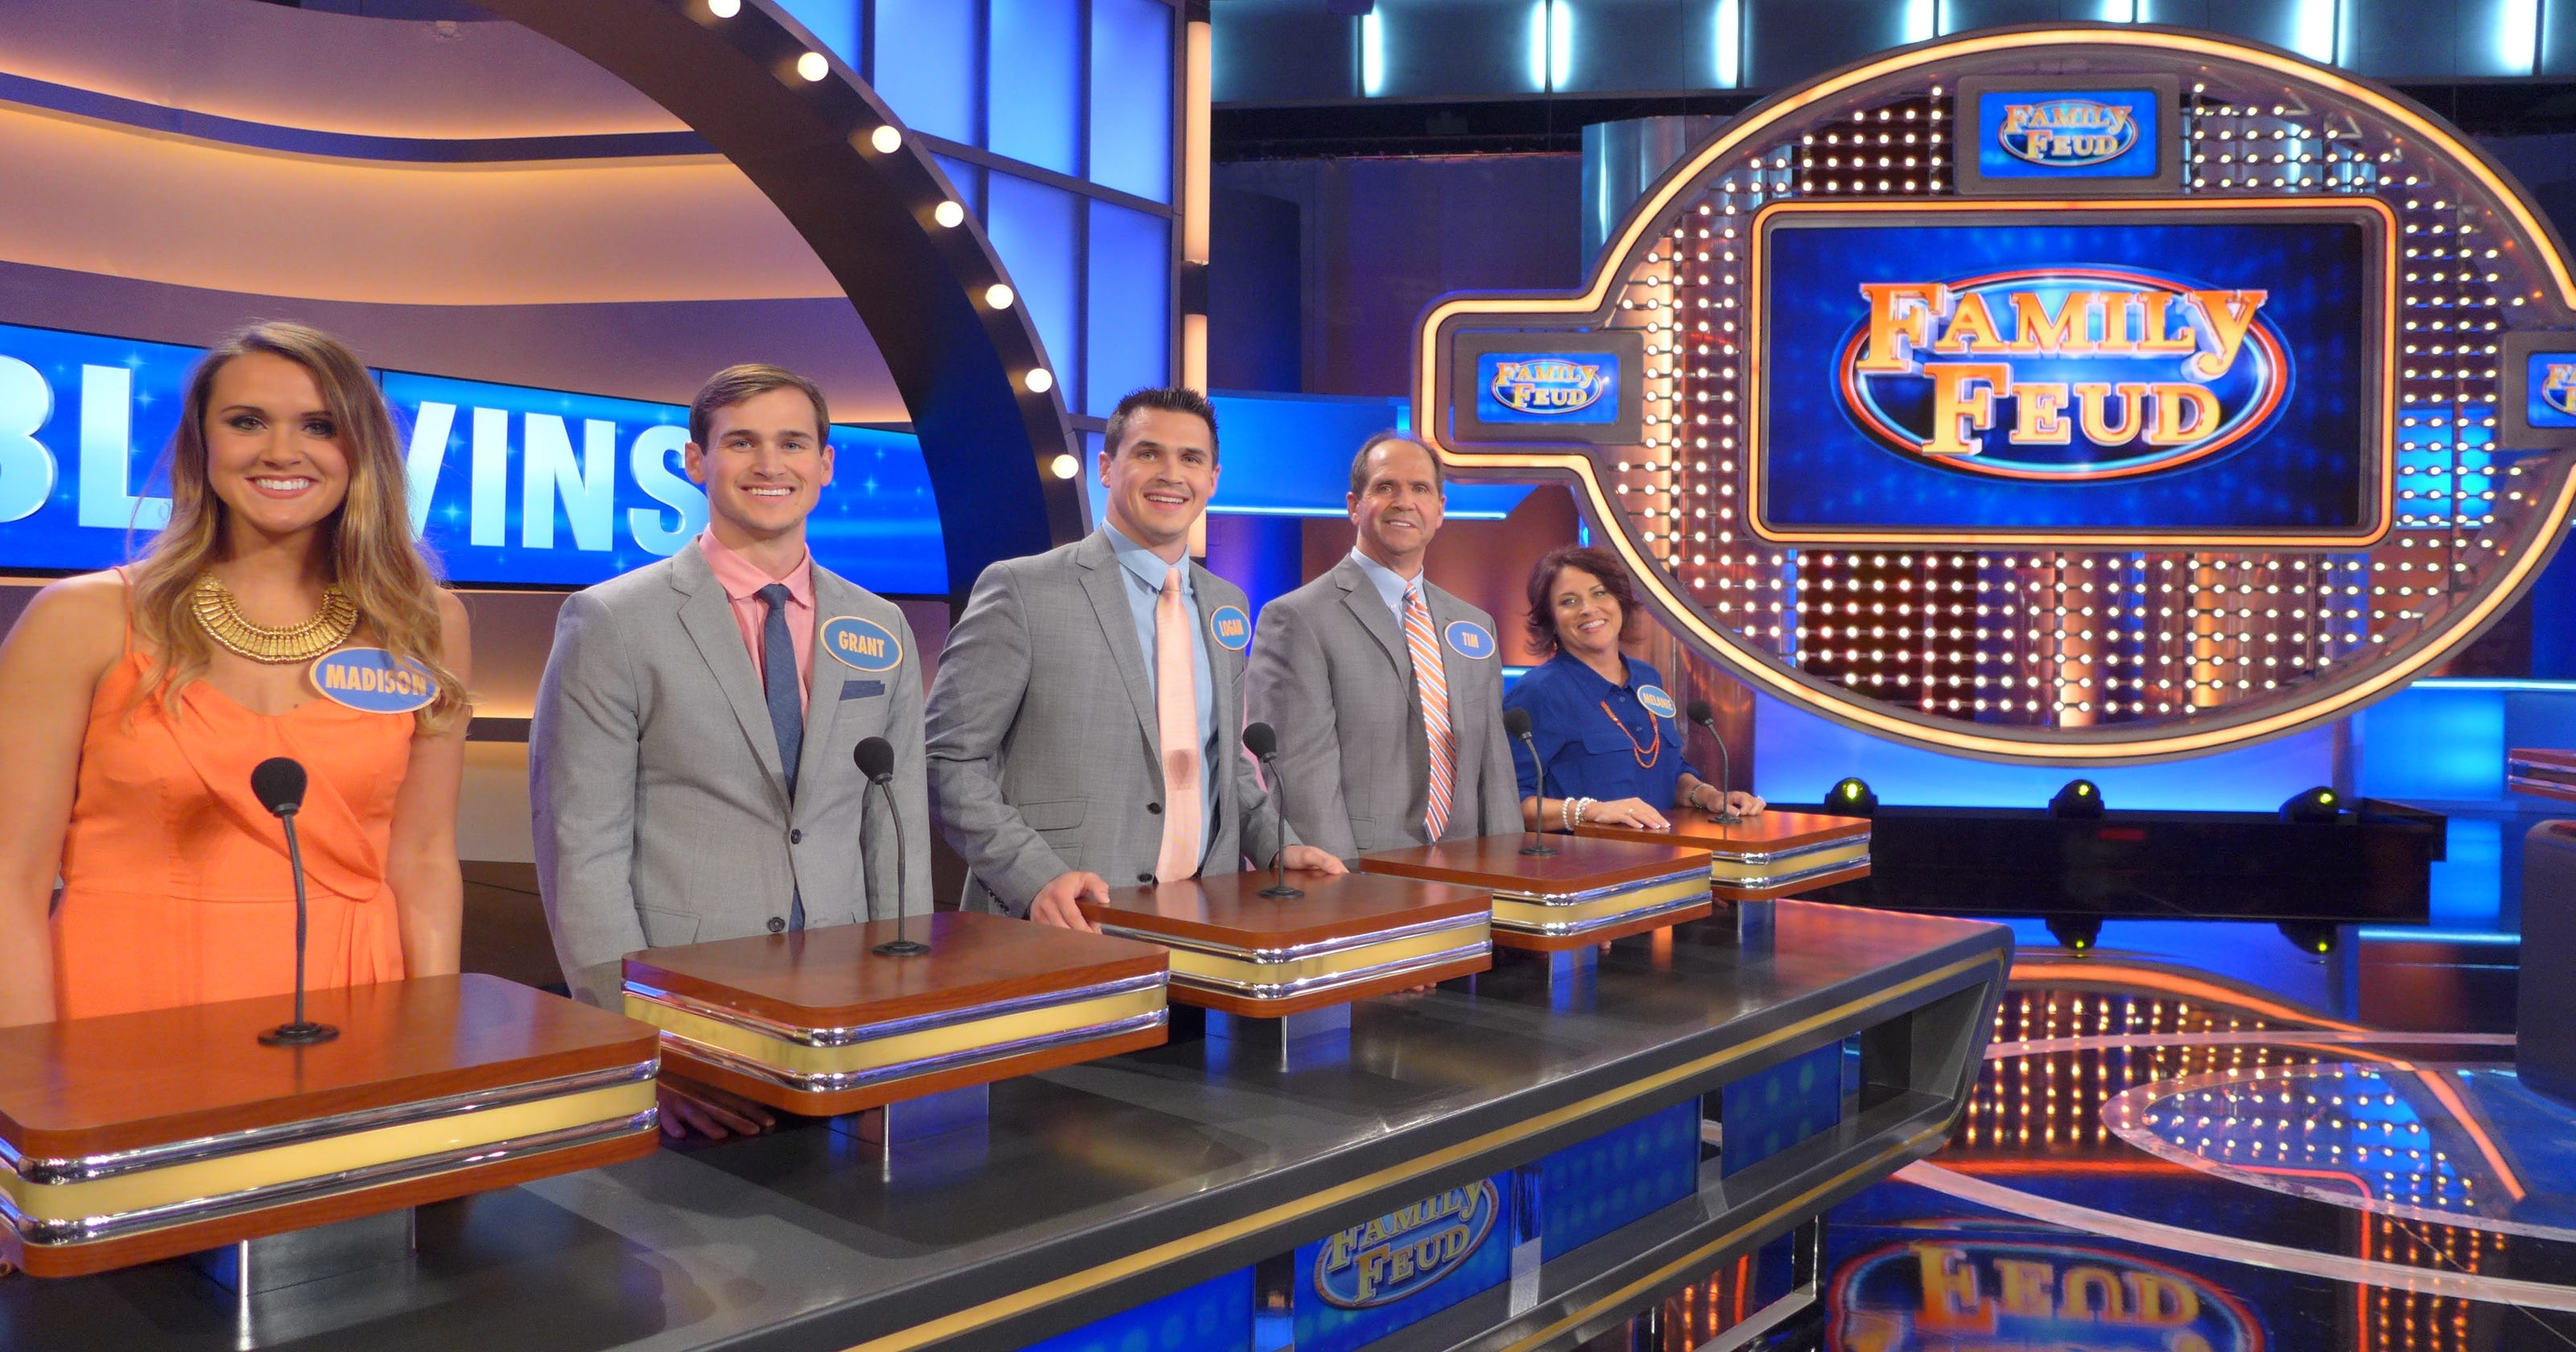 knoxville family to take on family feud